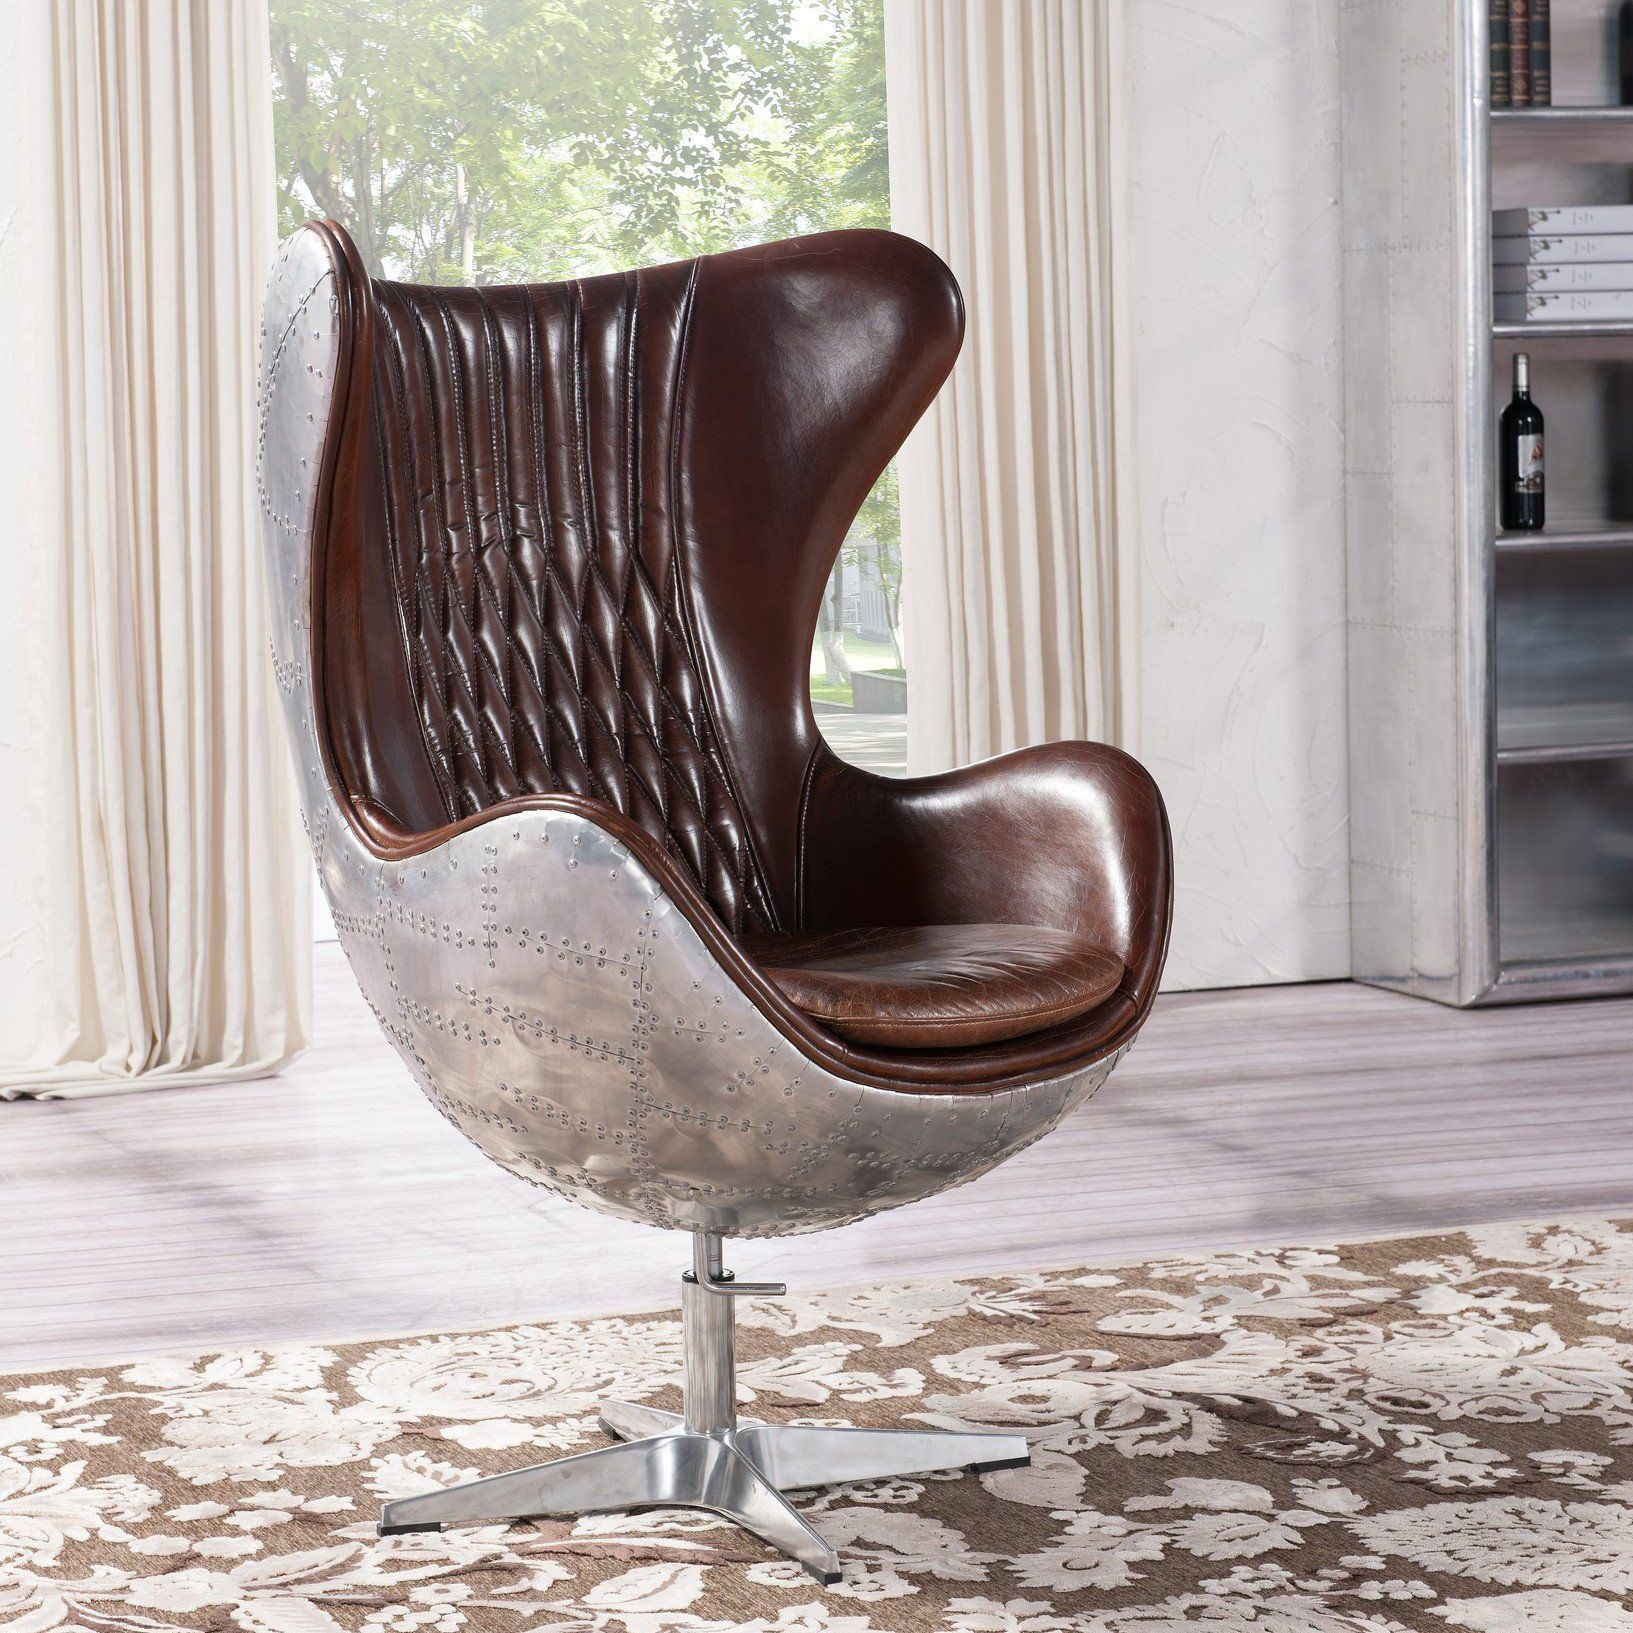 Egg Chair Accent Chairs.Harmon Egg Chair Want Egg Chair Bedroom Chair Chair